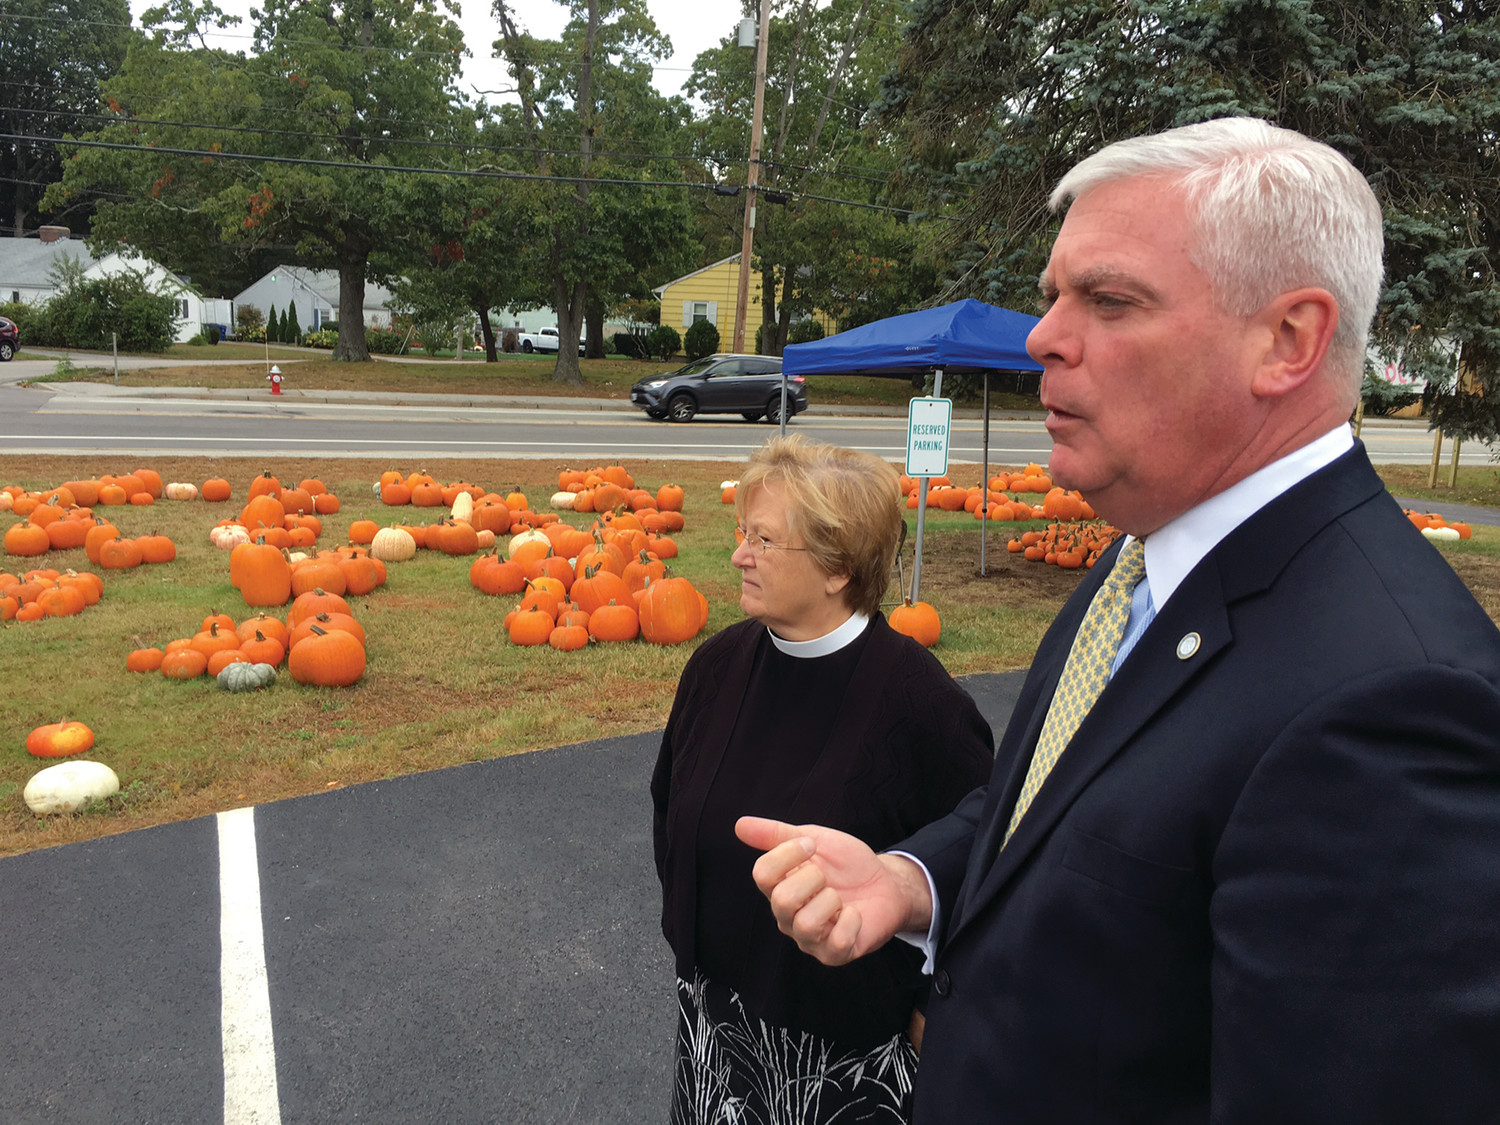 PUMPKIN PROS: Mayor Scott Avedisian and Mother Susan Wrathall survey the new crop of pumpkins for this year's fundraising pumpkin patch.